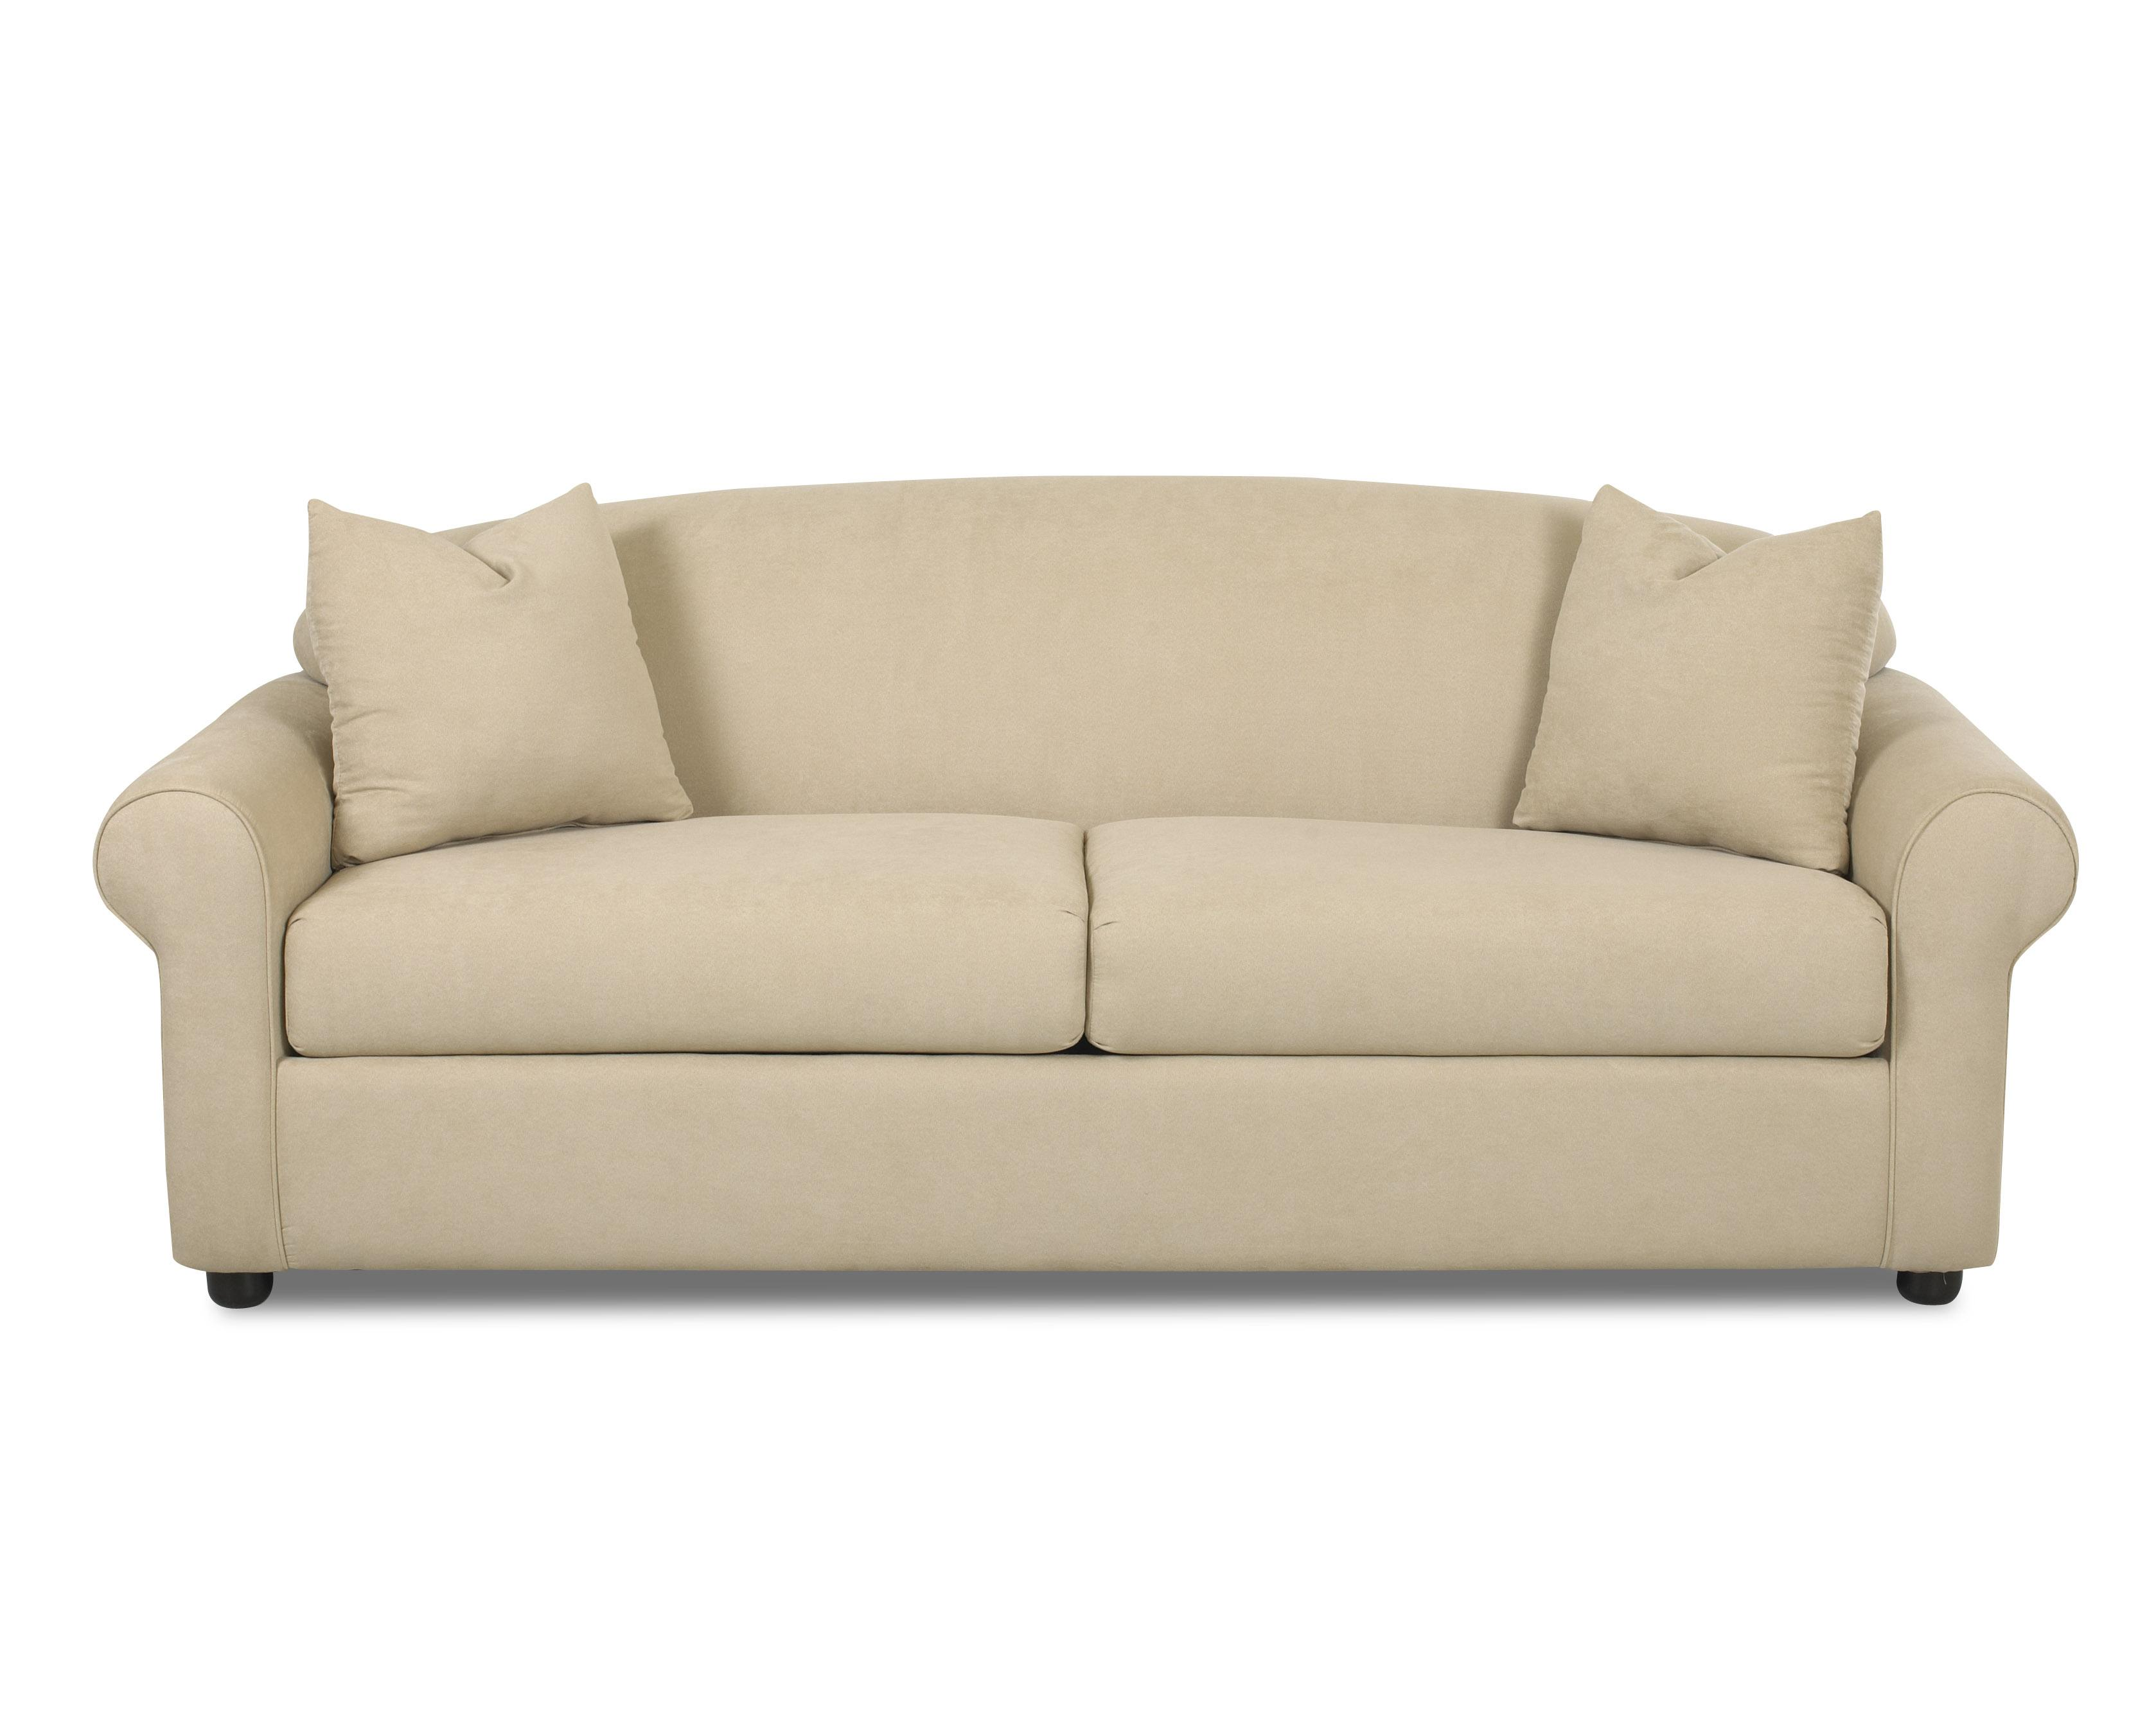 Possibilities Rolled Arm Sofa by Klaussner at Lapeer Furniture & Mattress Center